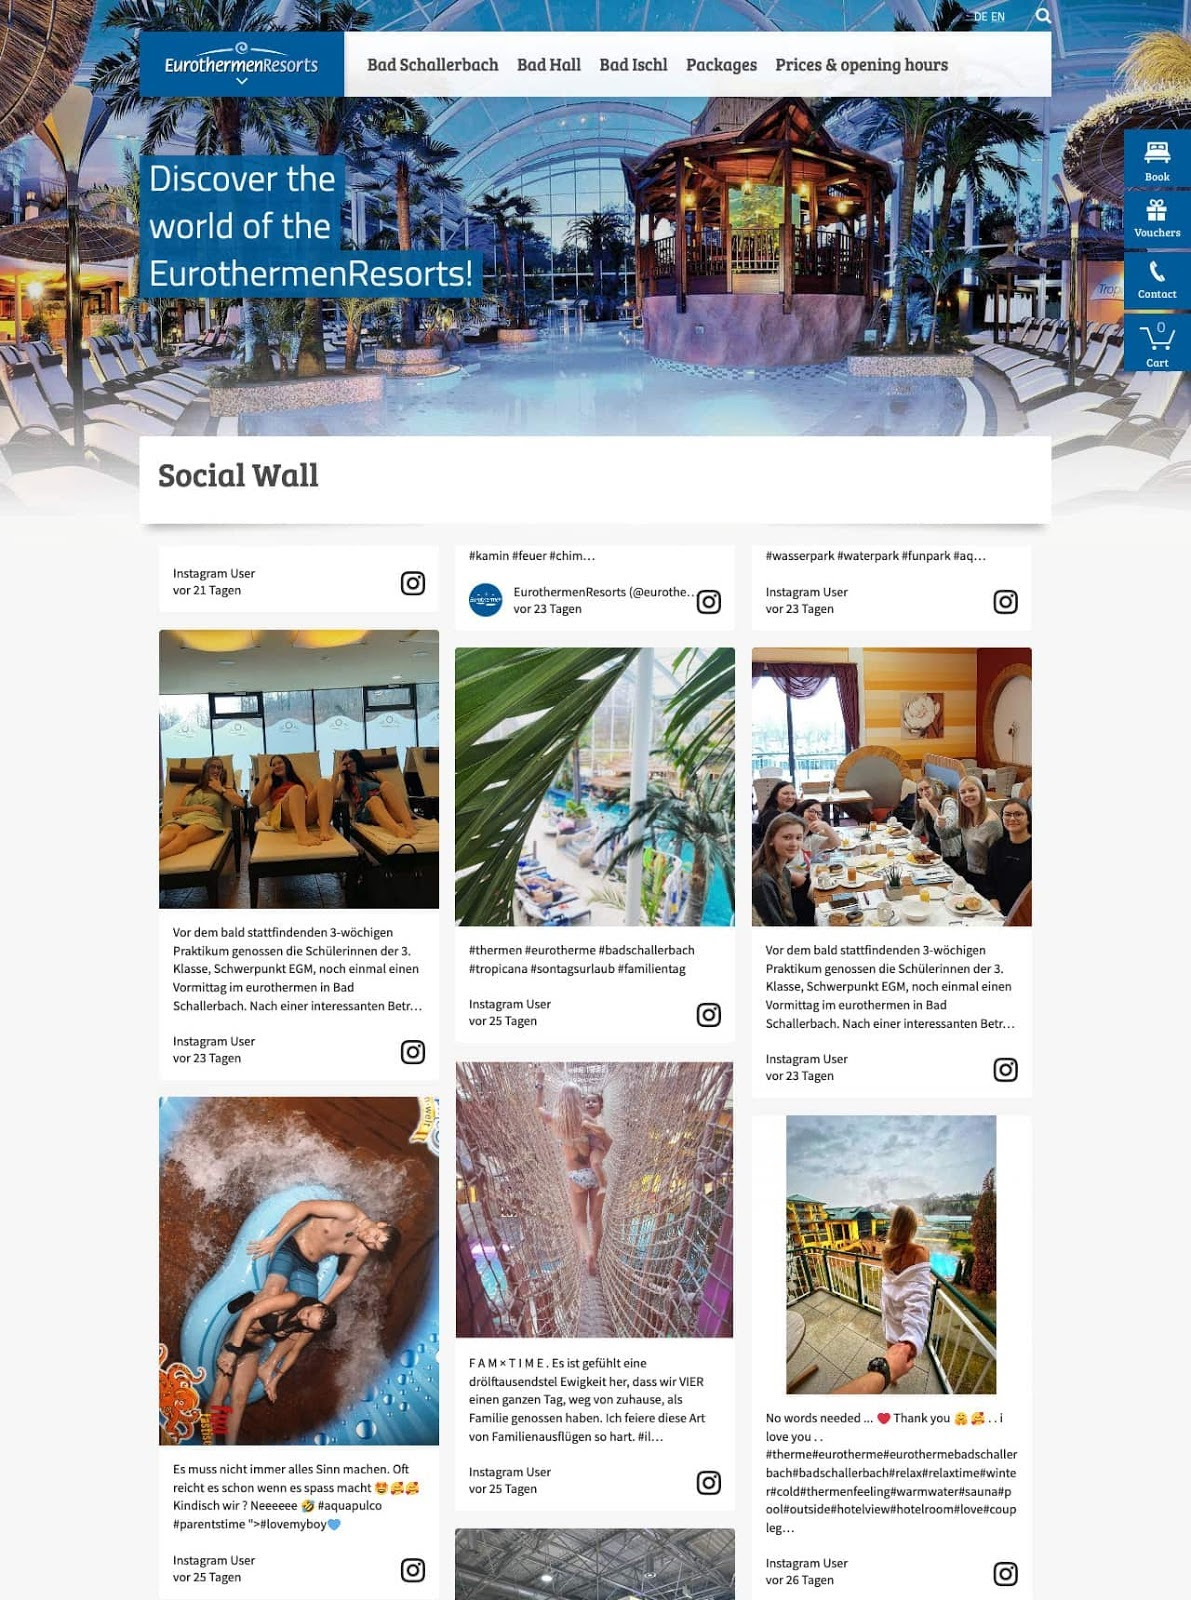 Screenshot of user-generated content examples from Eurotherme's social media wall. The image shows different photos from guests enjoying the facilities.